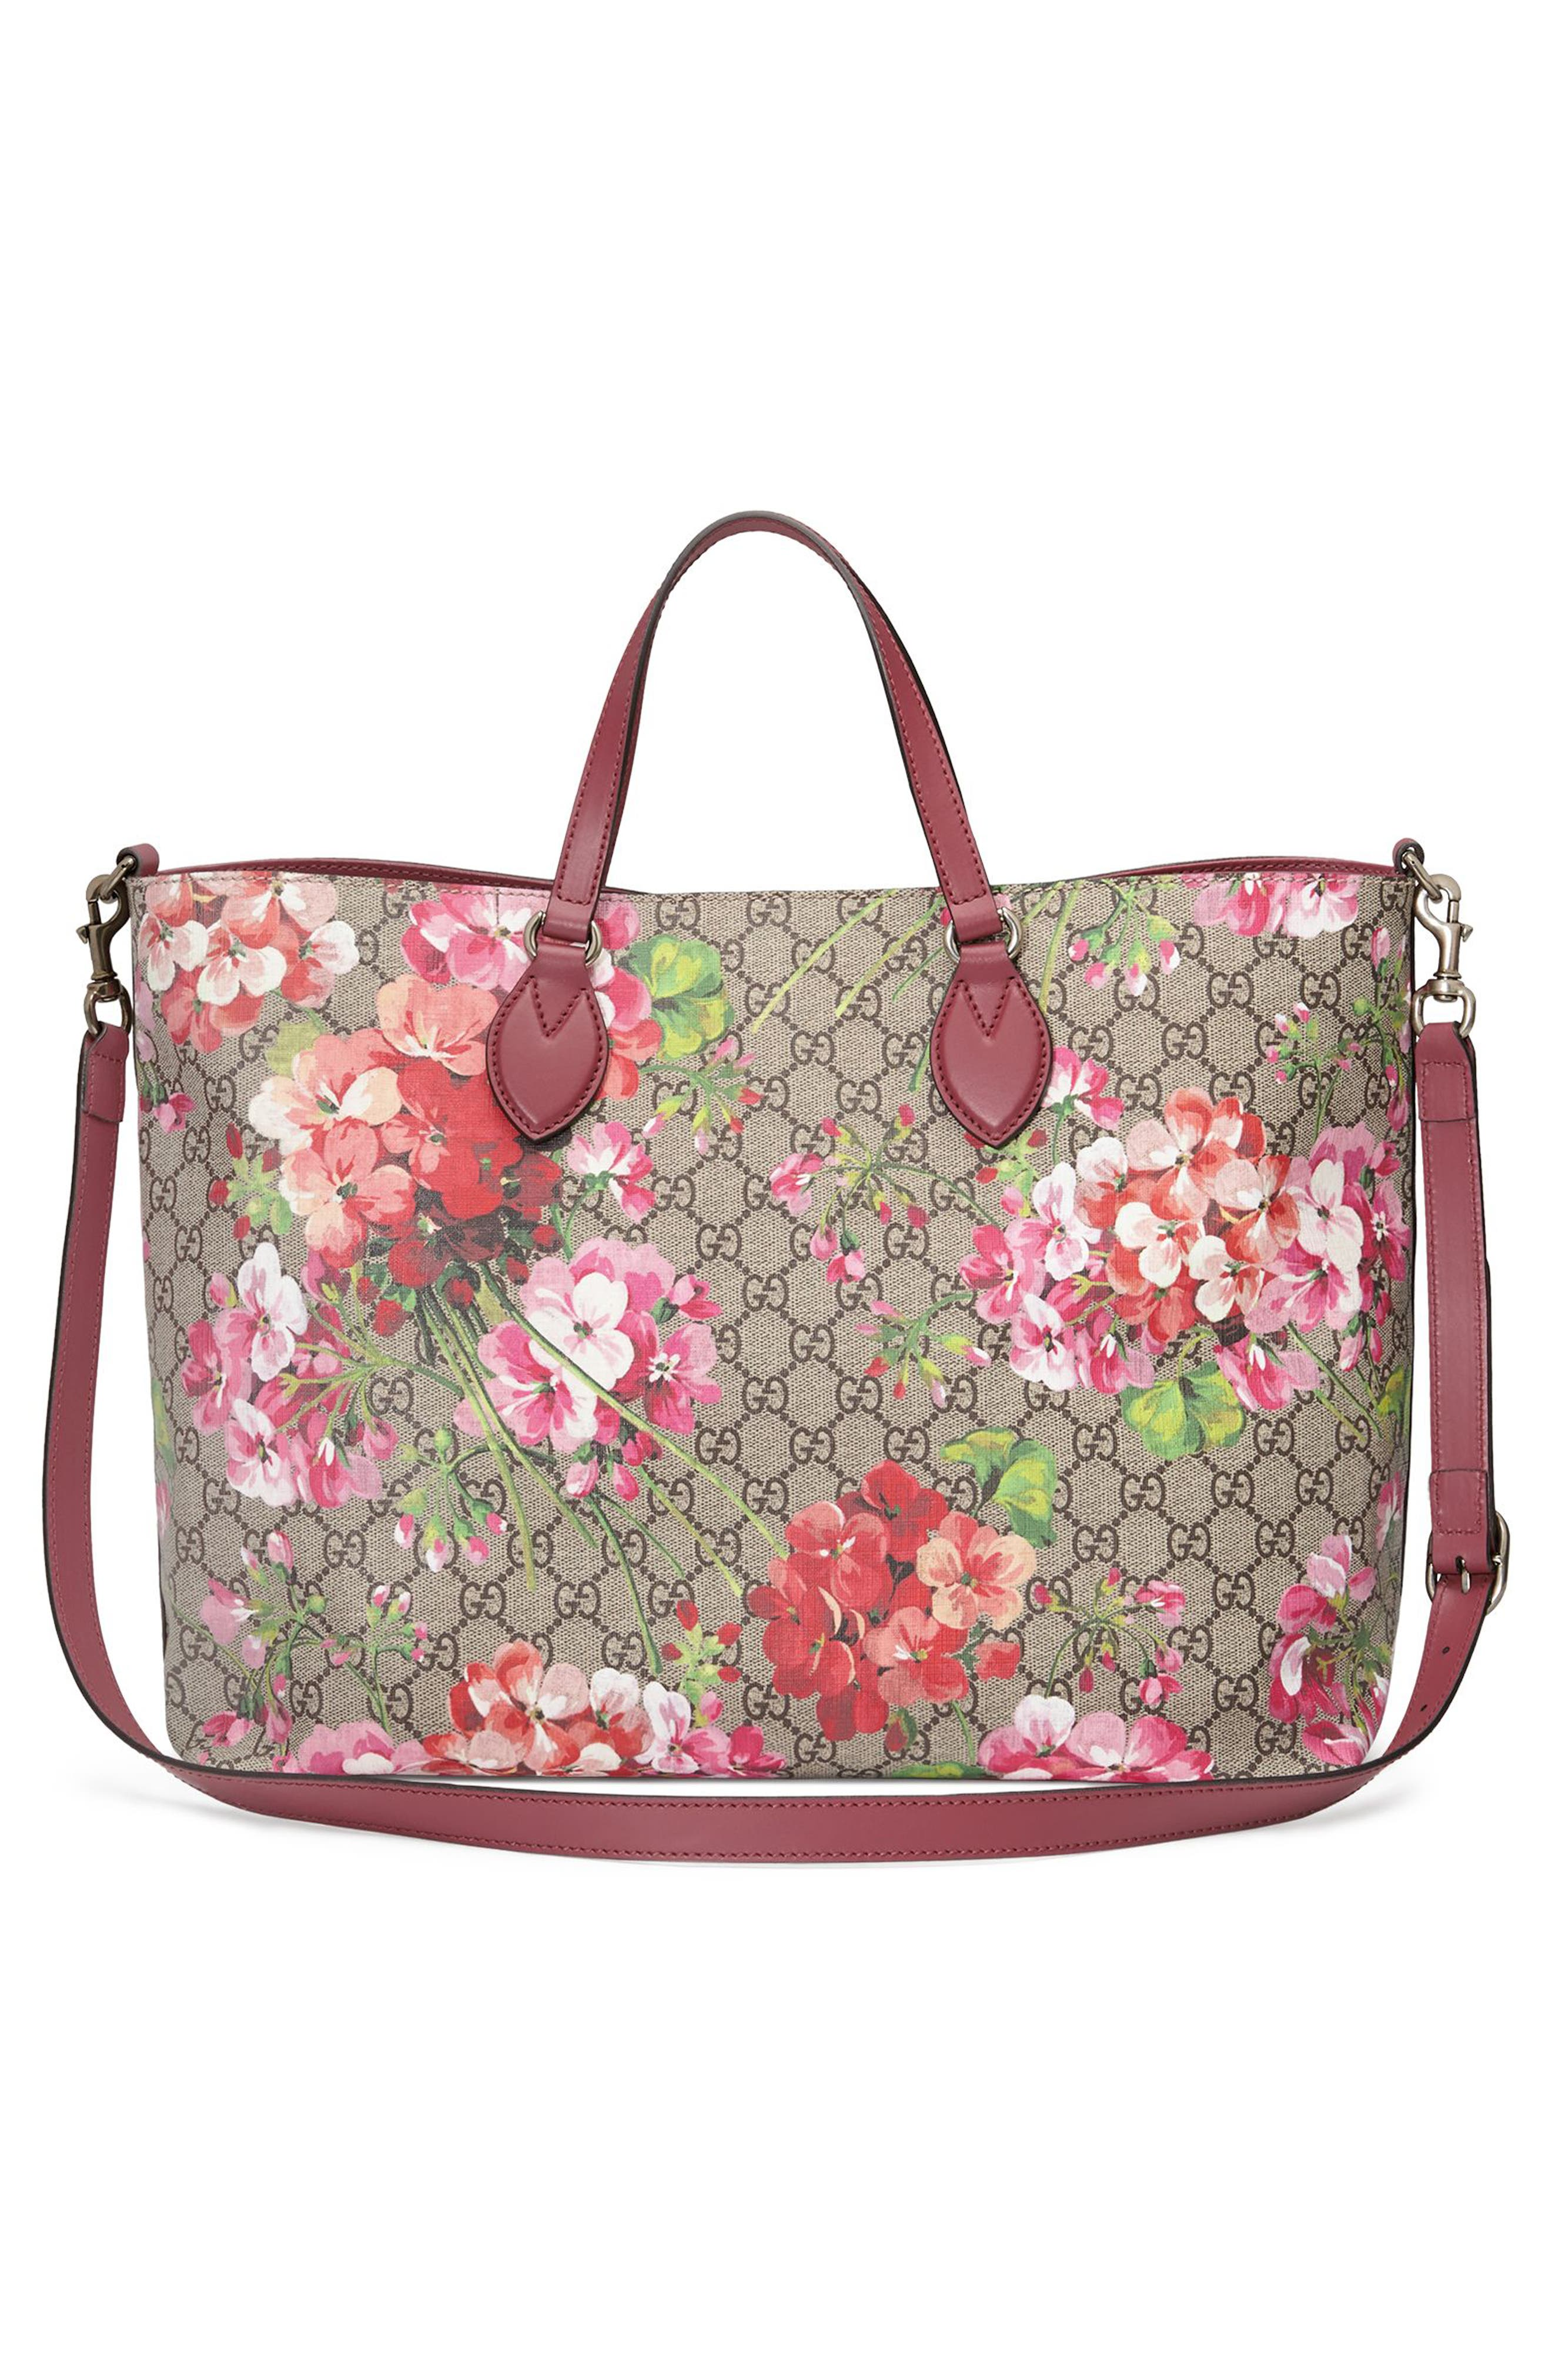 Soft GG Blooms Tote,                             Alternate thumbnail 2, color,                             Beige Ebony/Dry Rose